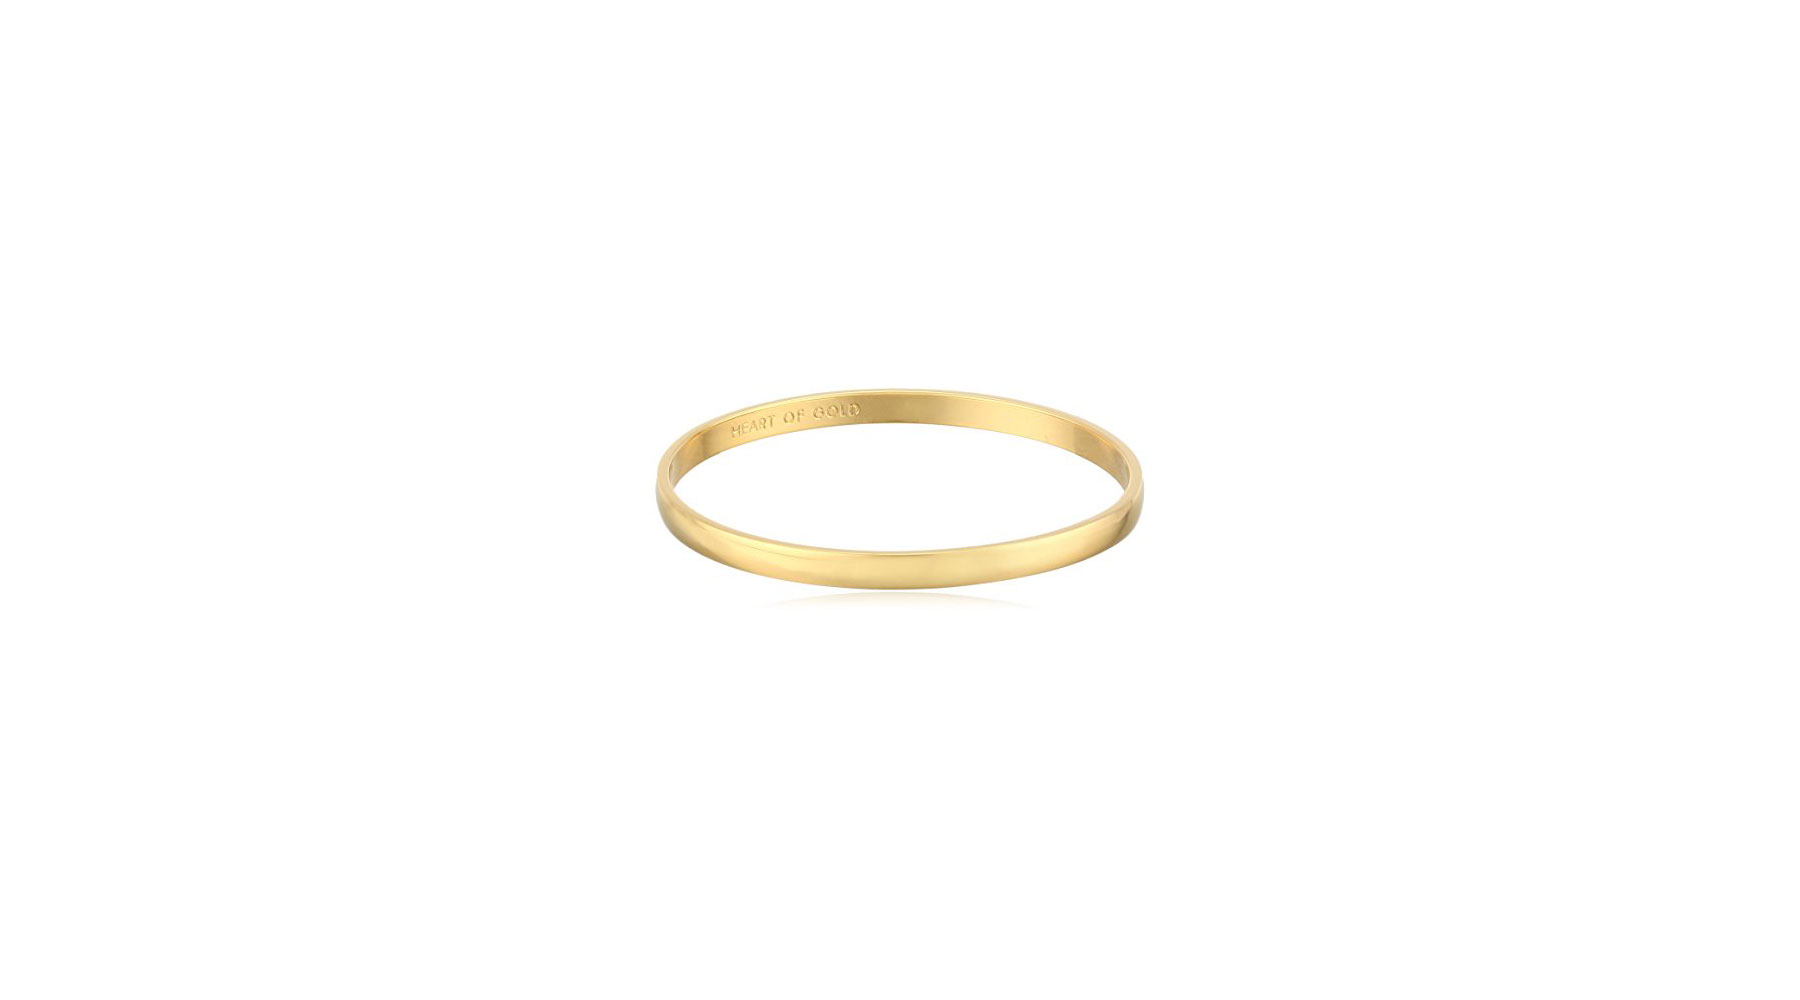 7a86c7c787bbf Best Rated Jewelry on Amazon for Valentine's Day Under $200   Real ...